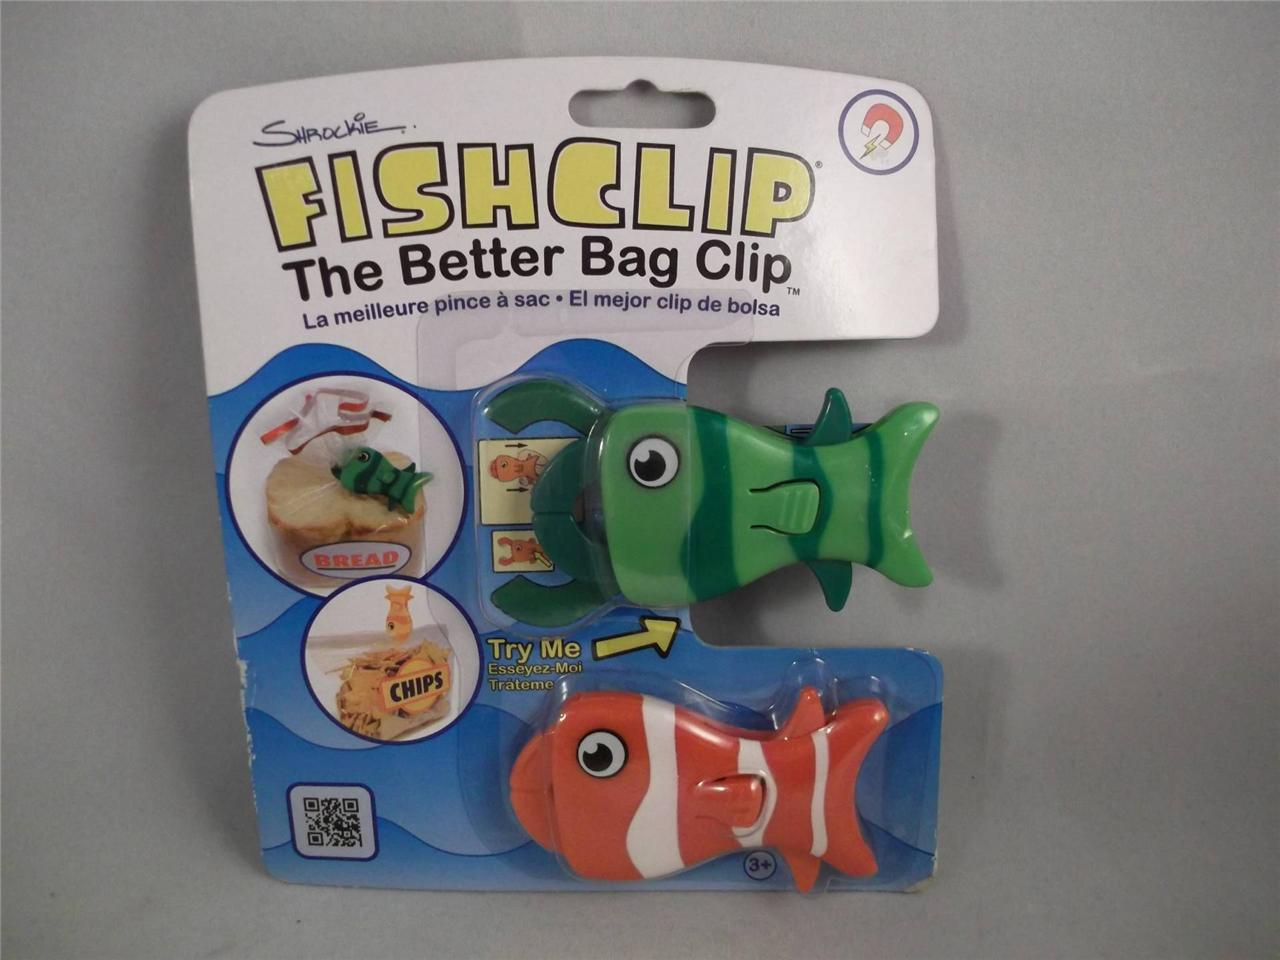 Clip Seal Bags 2 Shrockie Fish Clip The Better Bag Clip Magnetic Bag